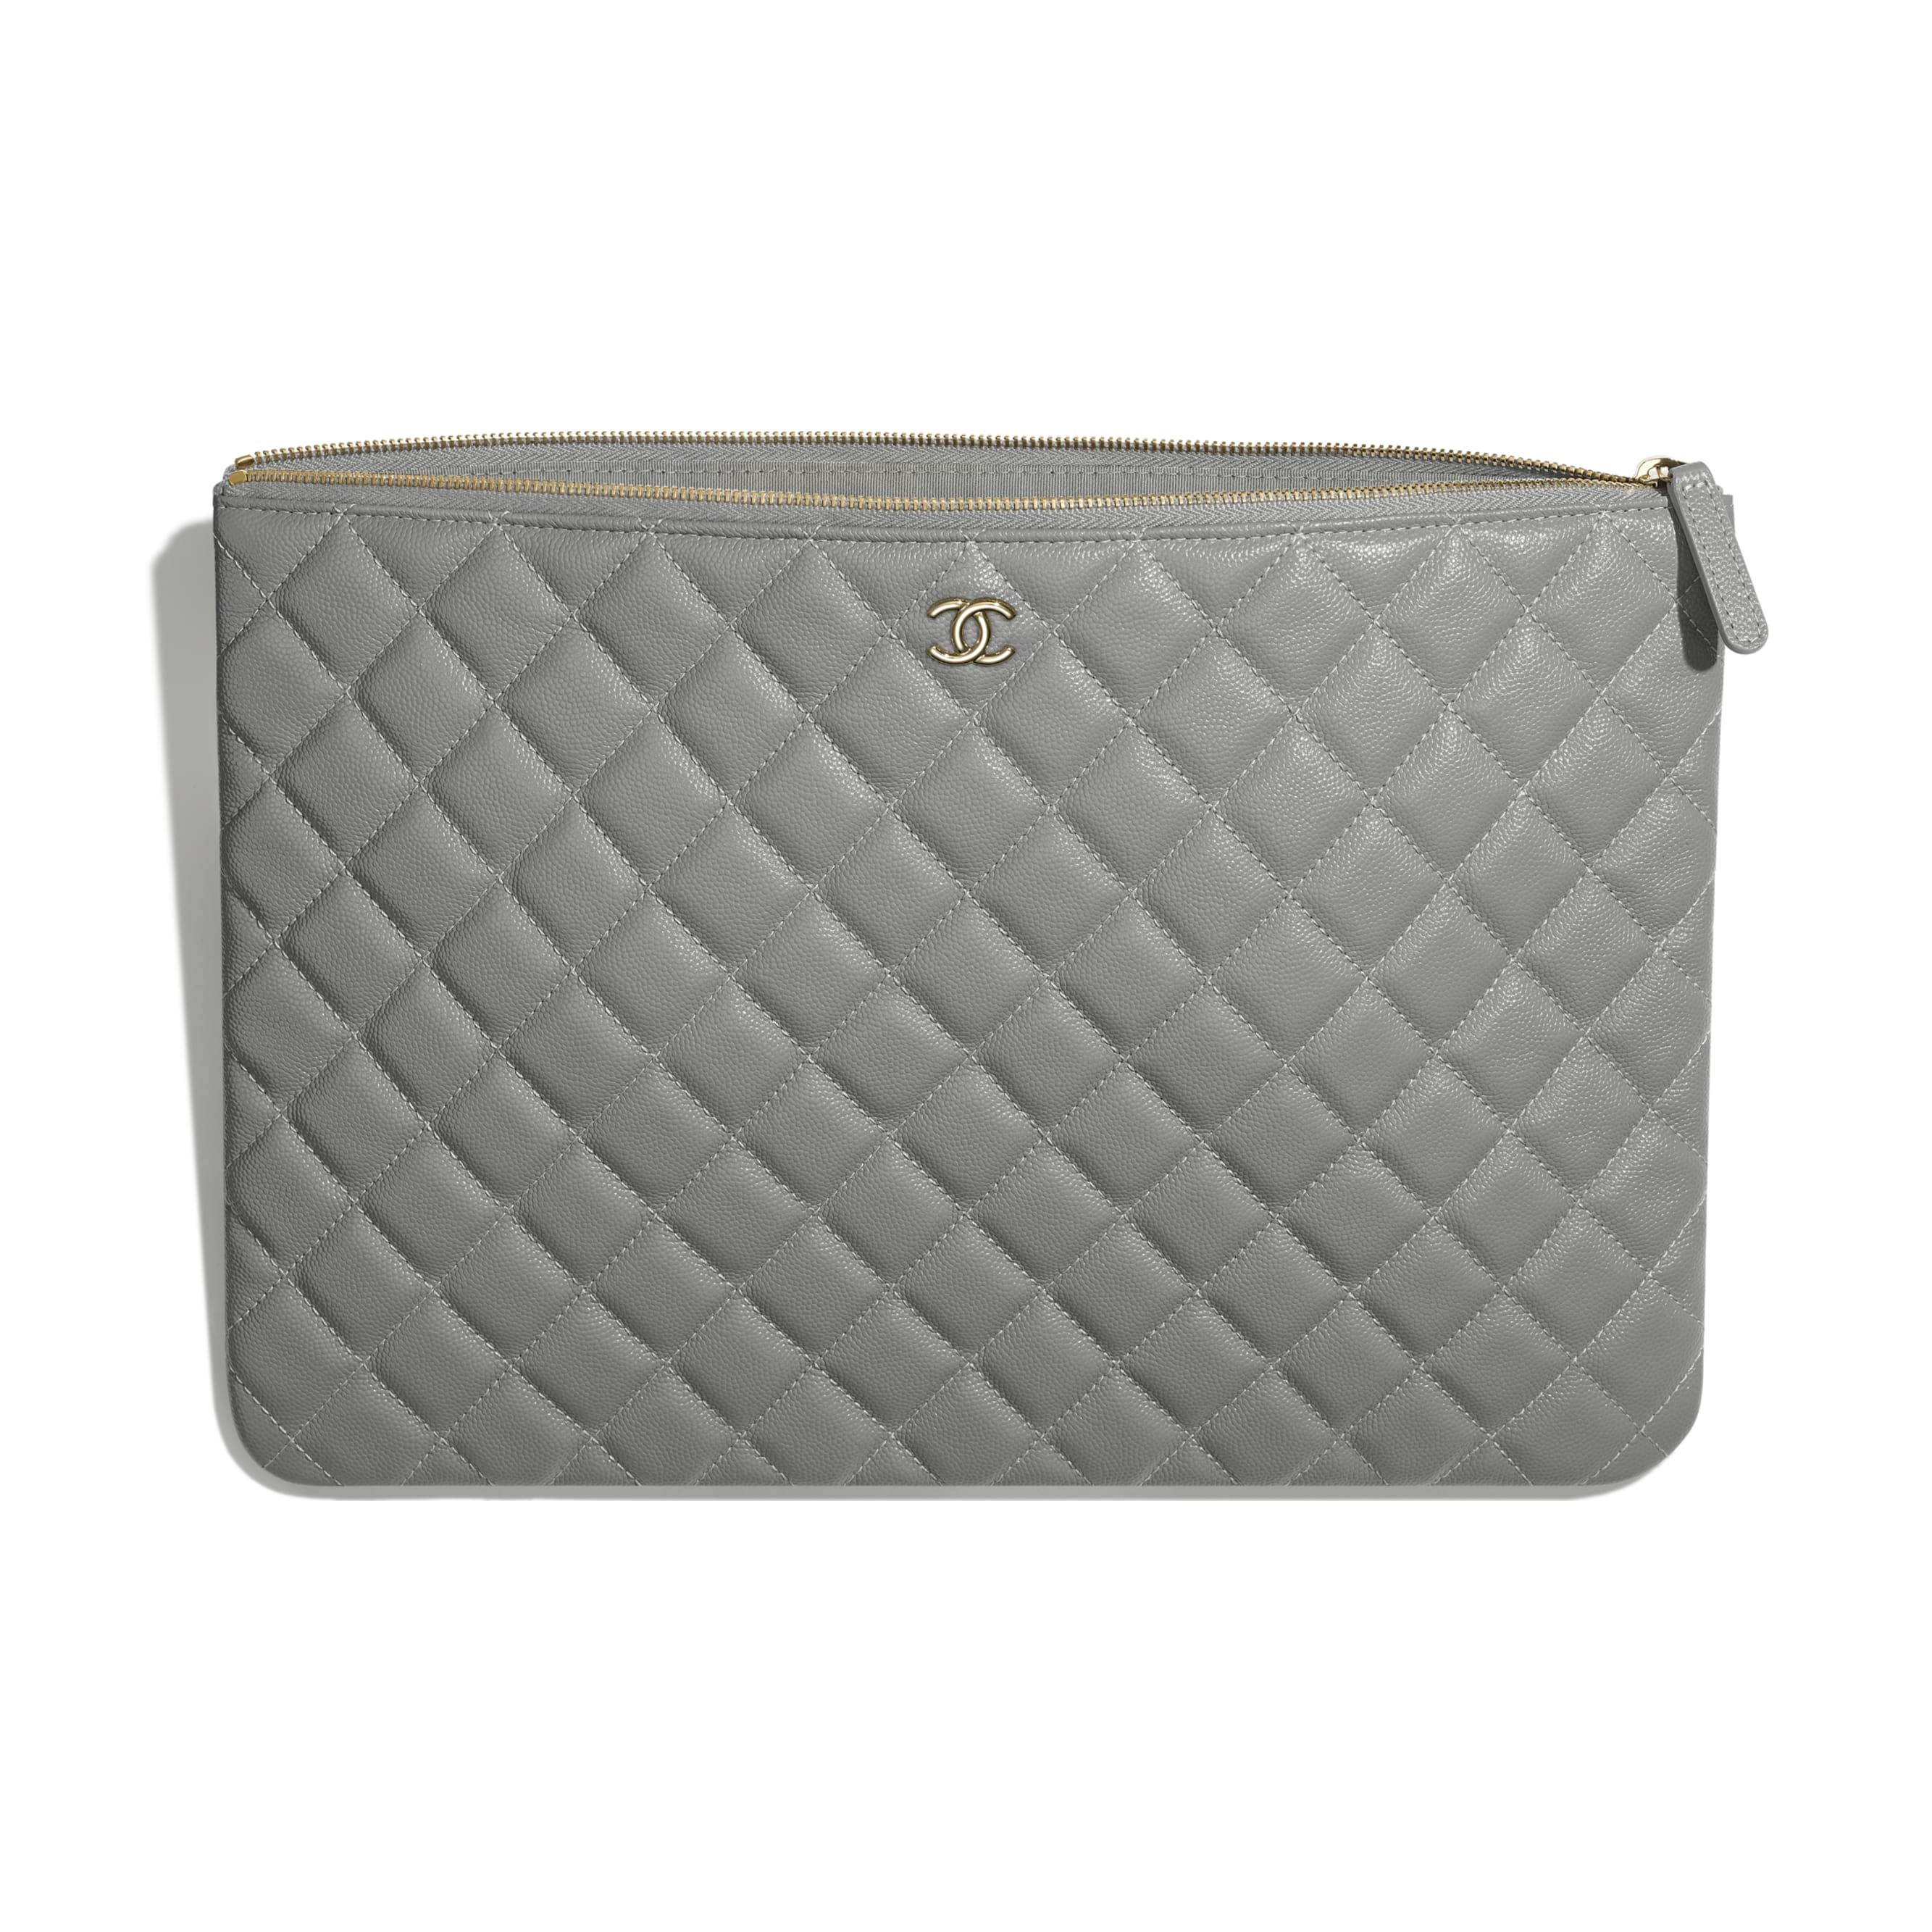 Classic Large Pouch - Gray - Grained Calfskin & Gold-Tone Metal - CHANEL - Other view - see standard sized version